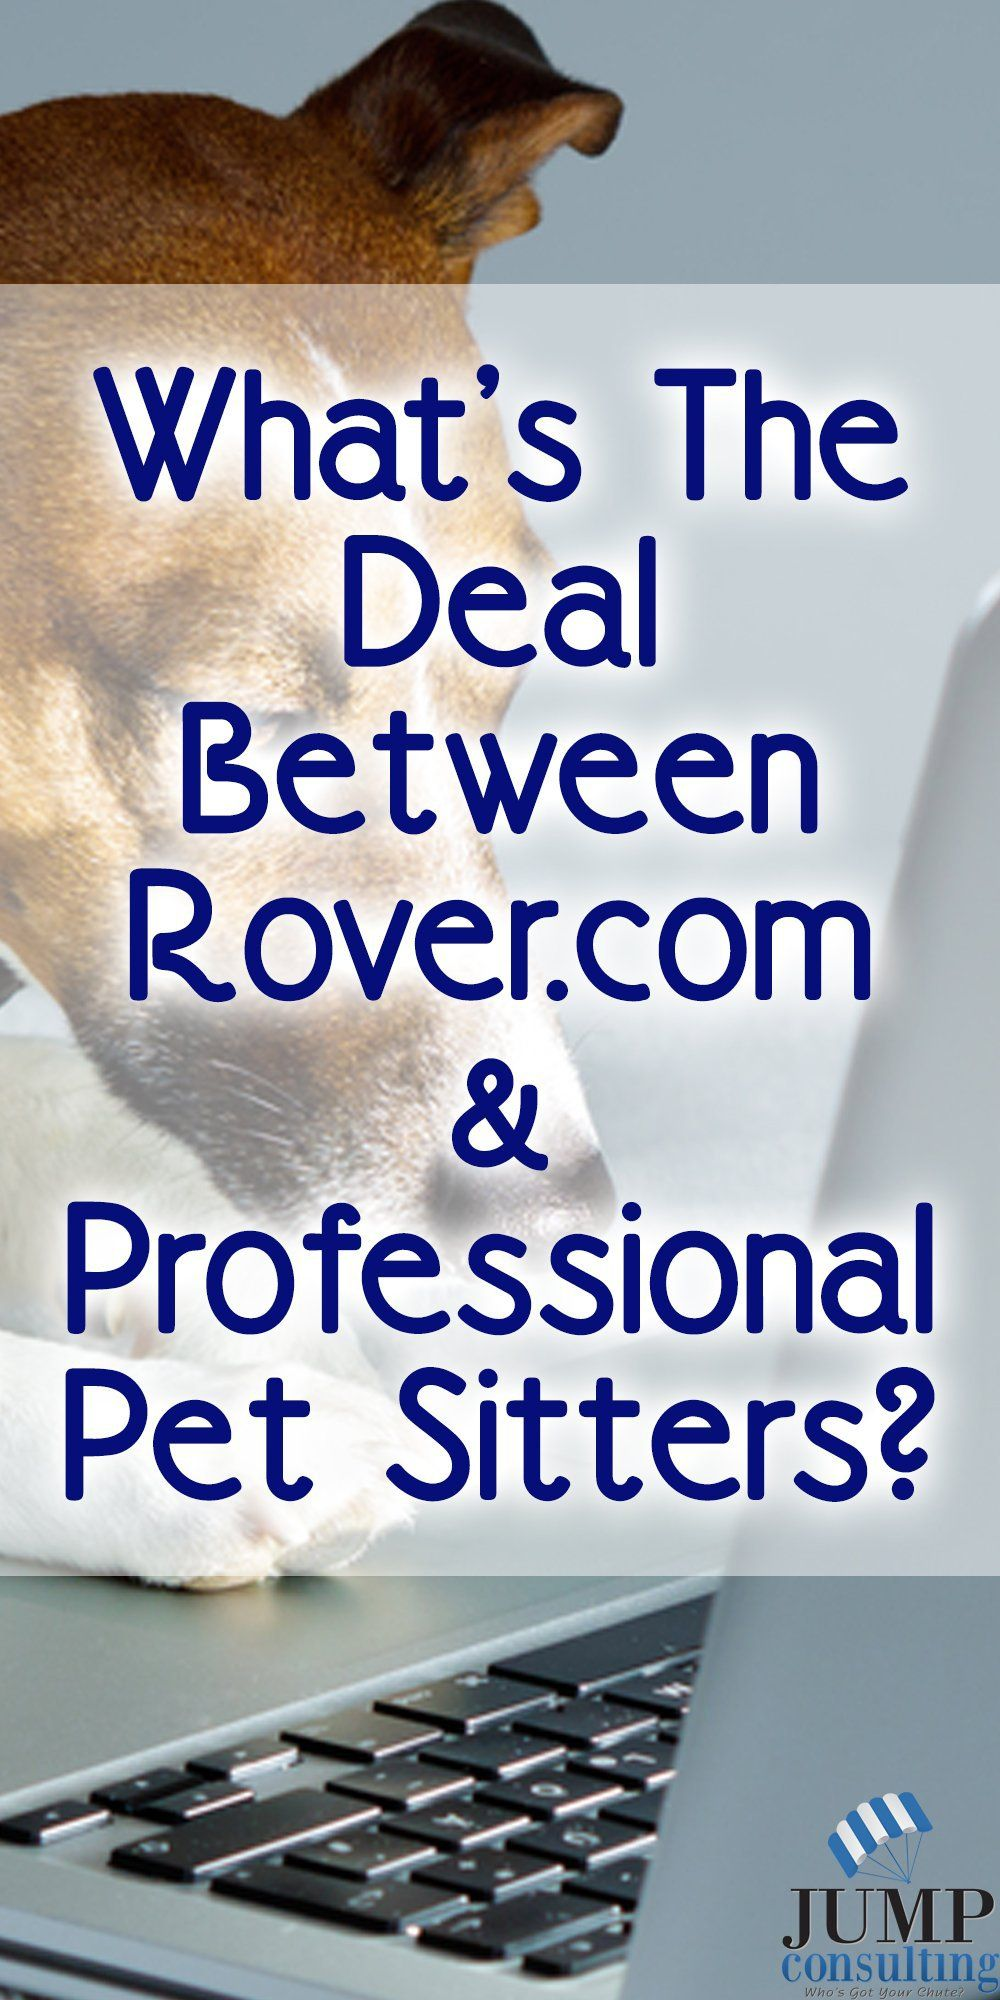 Do and professional pet sitters like each other